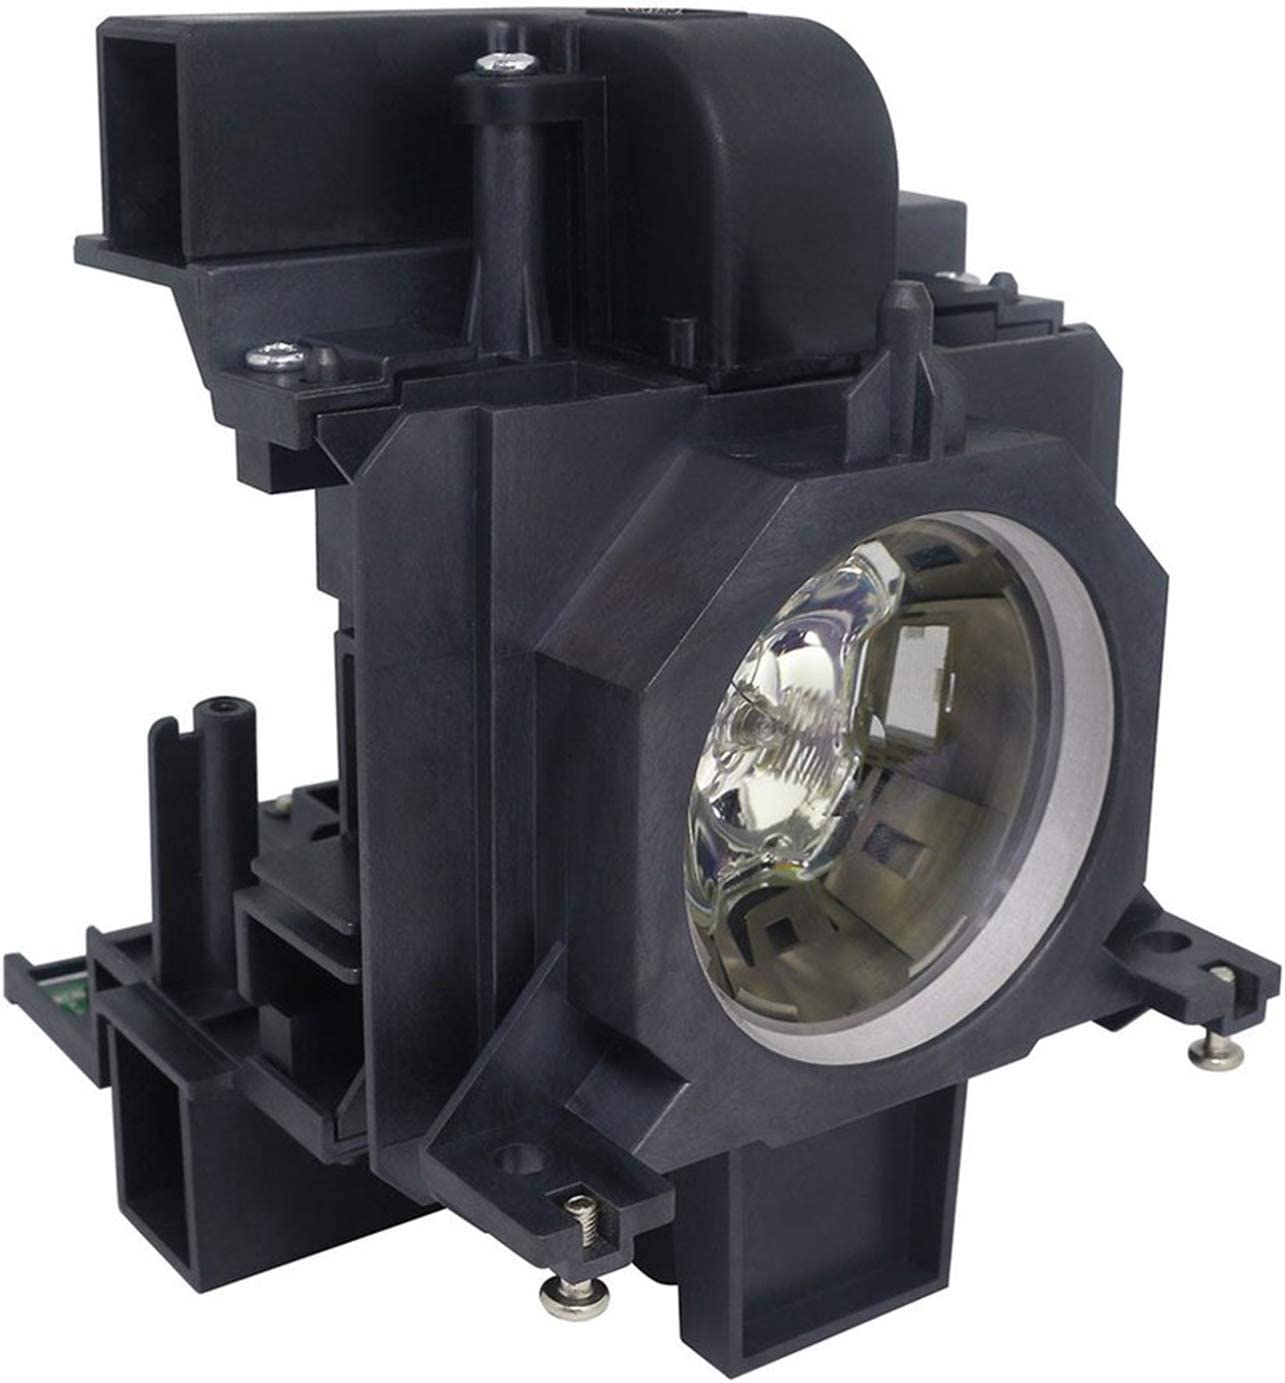 POA-LMP137/610-347-5158 Replacement Lamp Special Upgraded Design Bare Bulb Inside with Housing for SANYO XM1000C PLC-XM100 PLC-XM100L PLC-WM4500 PLC-XM5000 Projector by Stanlamp